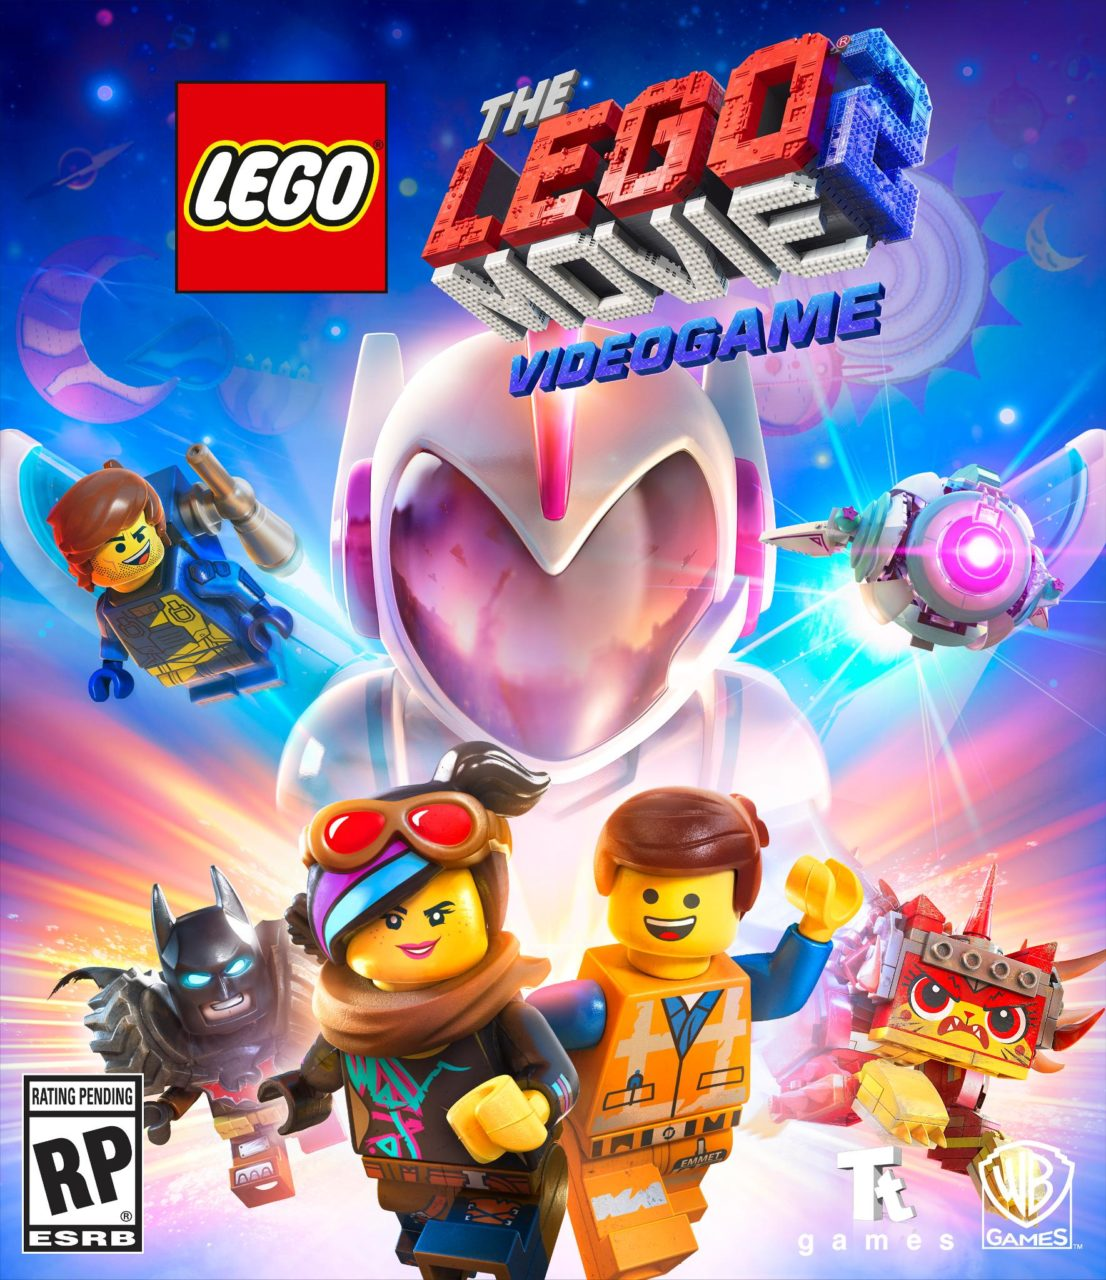 The LEGO Movie 2 Video Game Is, Of Course, Happening - FBTB